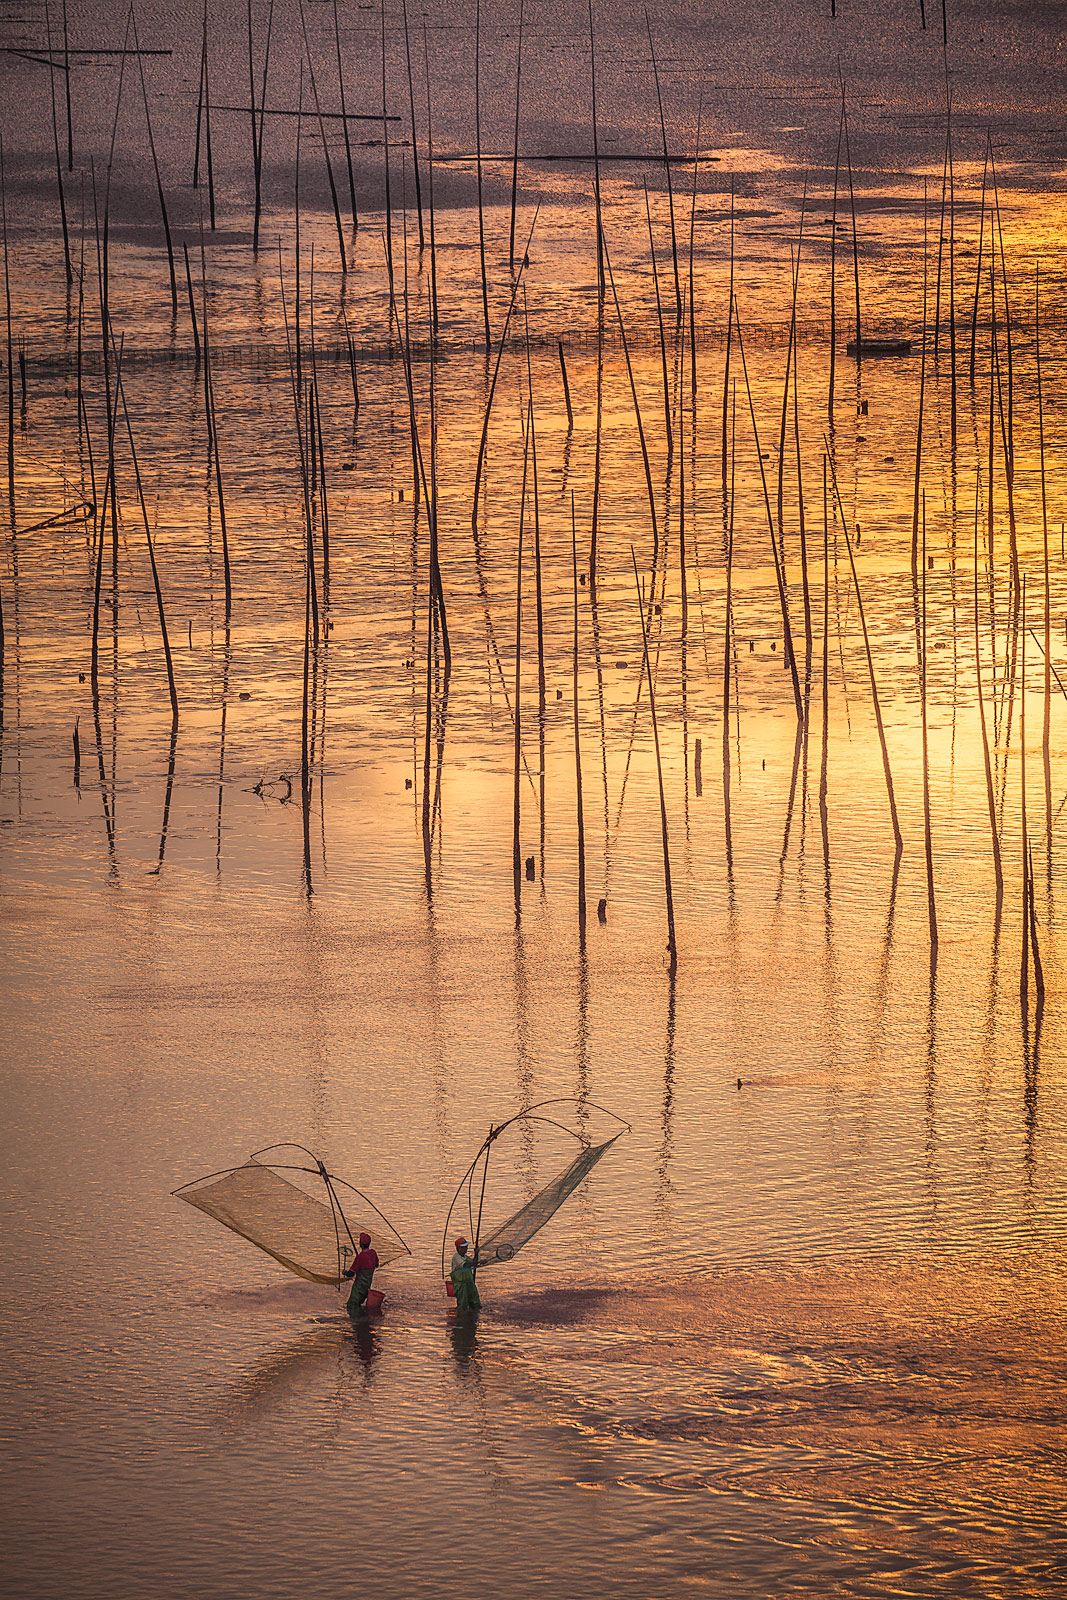 Bei Qi,BeiQi,Xia Pu,XiaPu,asia,beach,boat,china,fisherman,fishing boat,hill,lake,landscape,morning,mountain,mud flat,mudflat,net,nets,sticks,sunrise,water, photo